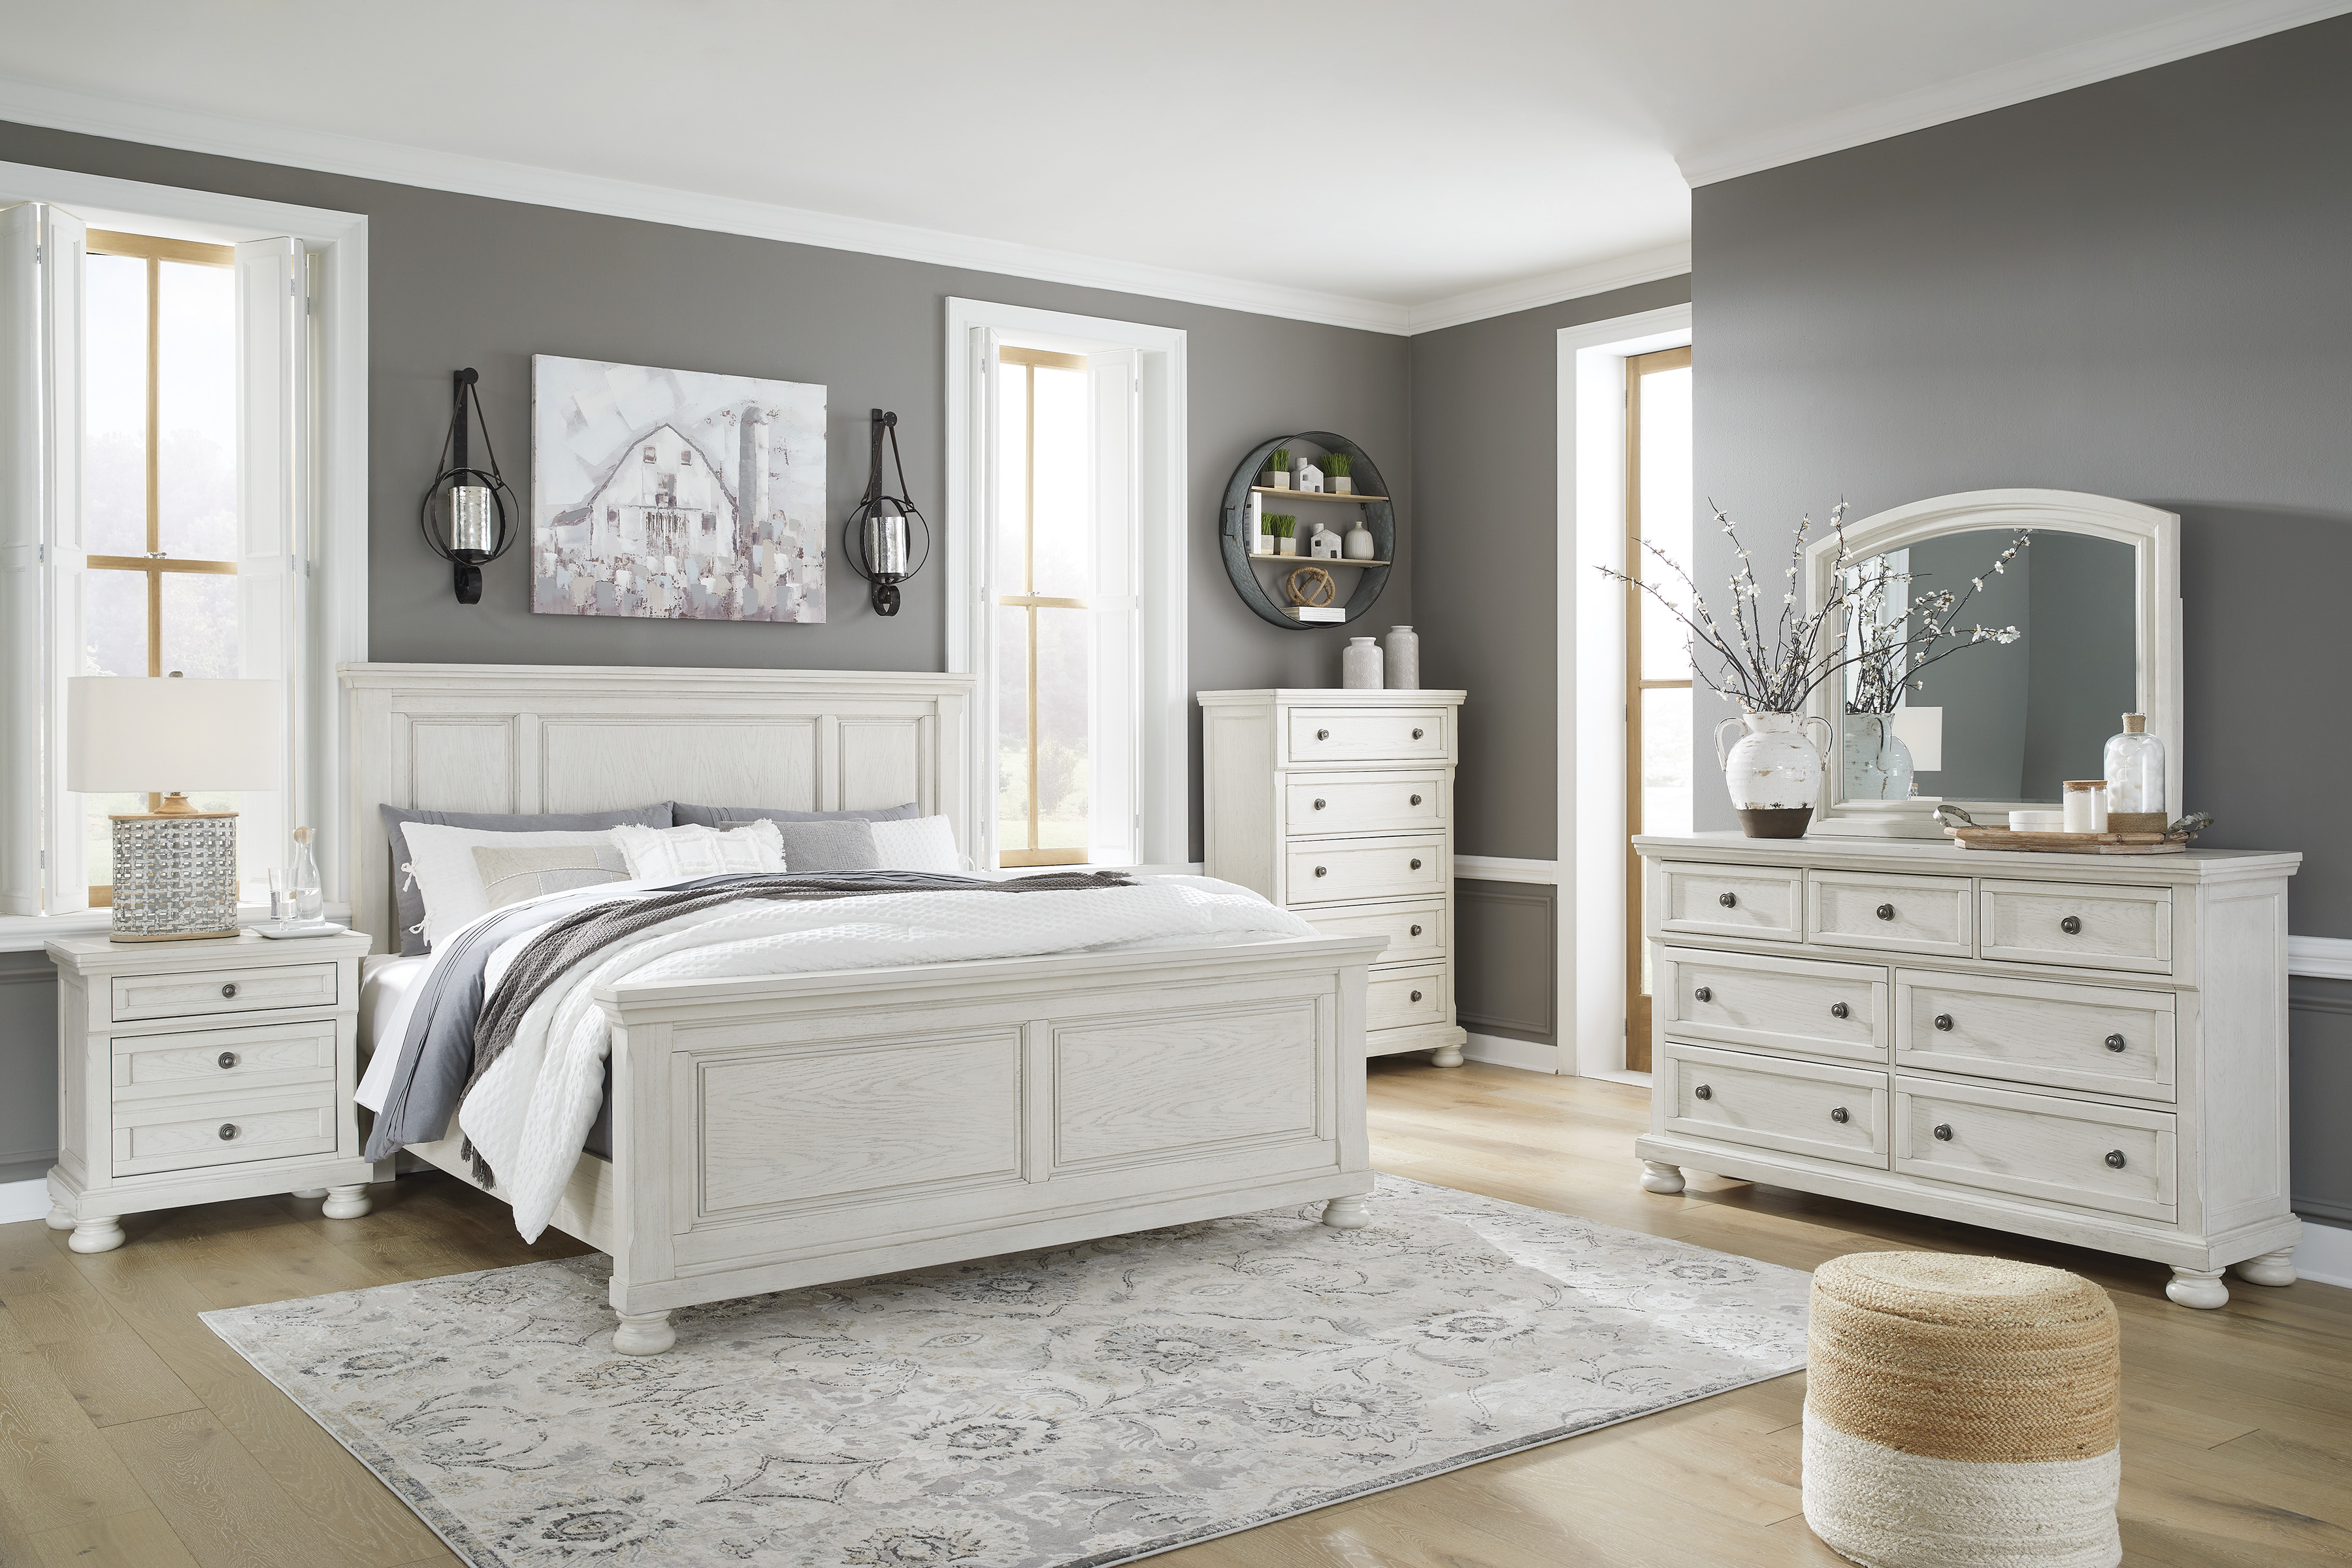 Robbinsdale Bedroom Groups by Signature Design by Ashley at Furniture Fair - North Carolina